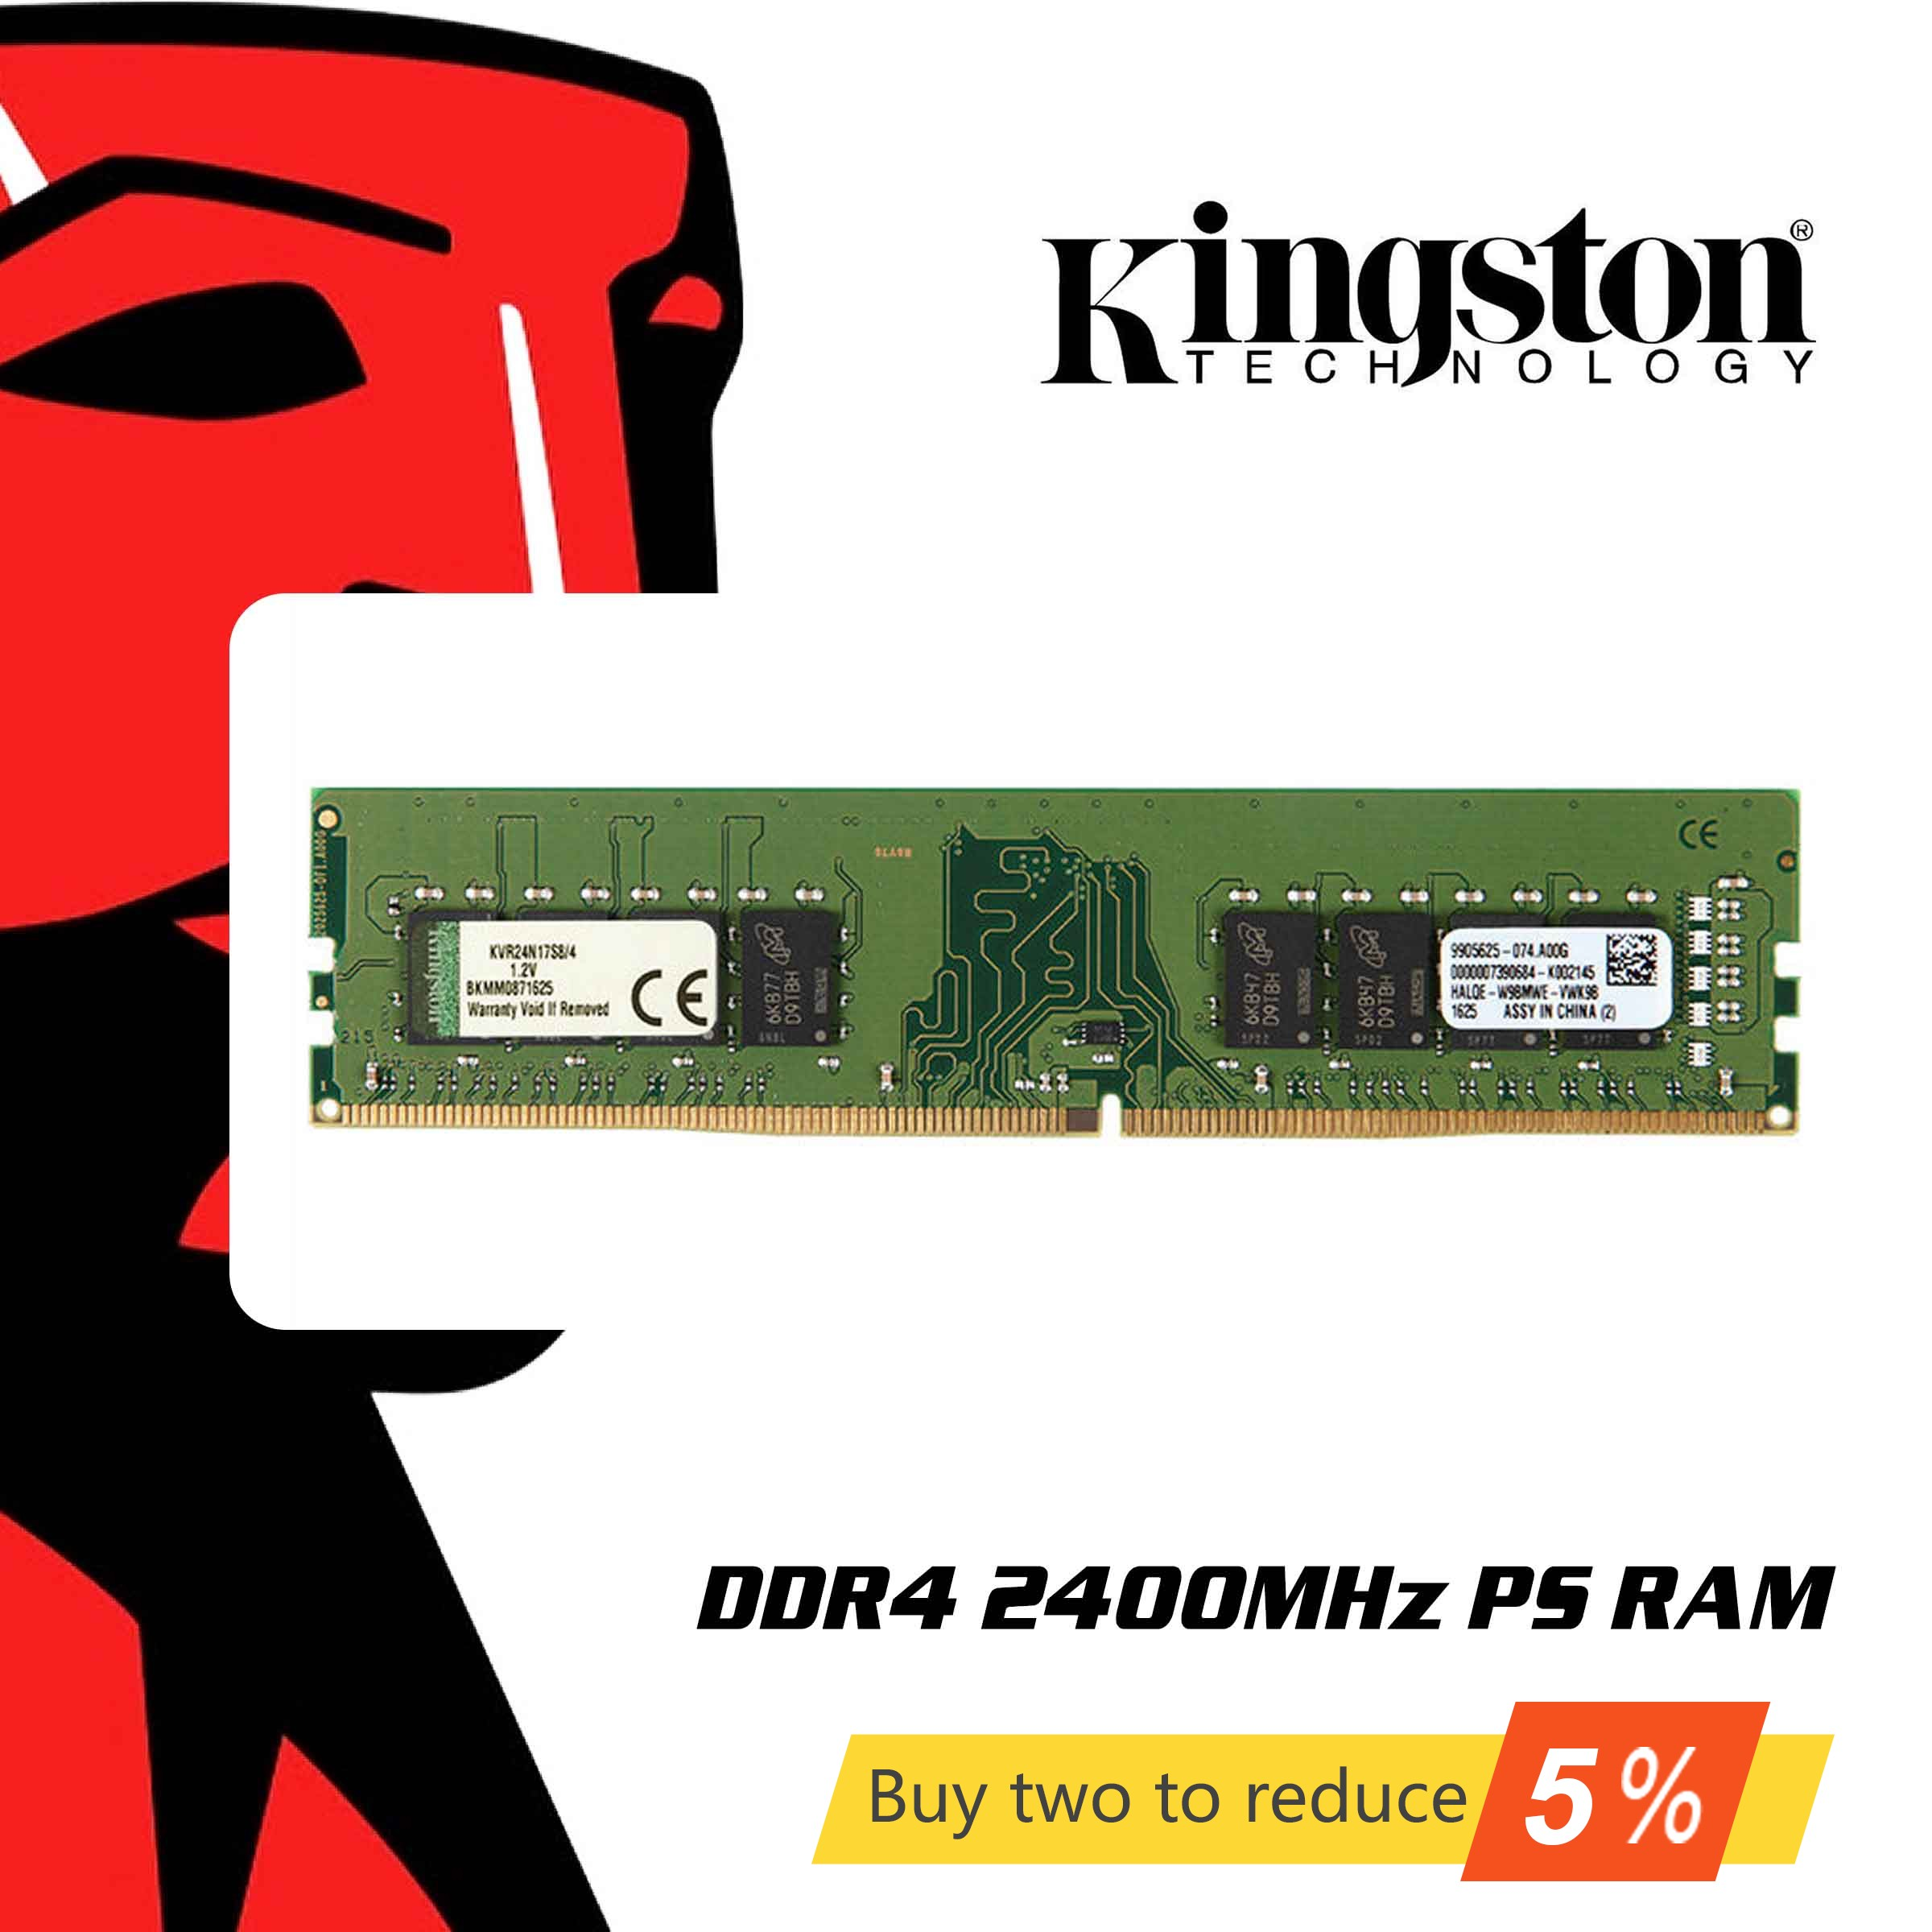 Original Kingston <font><b>DDR4</b></font> <font><b>RAM</b></font> Memory 8GB 4GB <font><b>16GB</b></font> <font><b>2400Mhz</b></font> <font><b>Memoria</b></font> DDR 4 8 16 Gigabytes Gigs Sticks for Desktop PC <font><b>Notebook</b></font> Laptop image